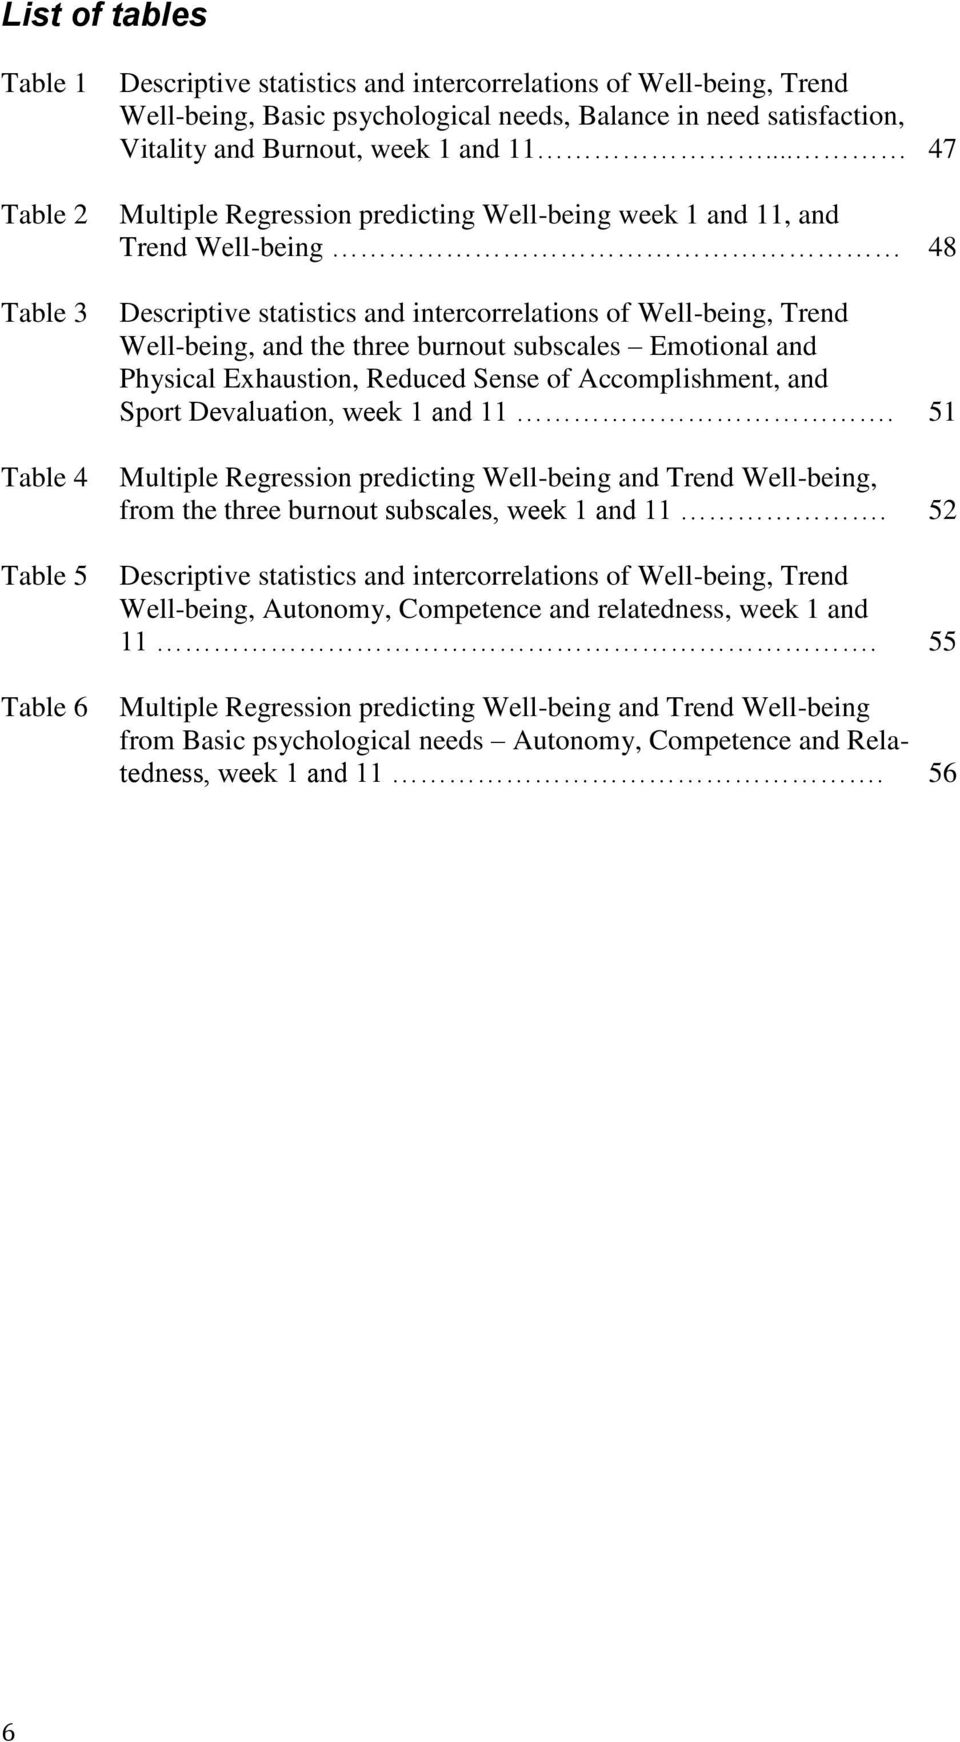 .. 47 Multiple Regression predicting Well-being week 1 and 11, and Trend Well-being 48 Descriptive statistics and intercorrelations of Well-being, Trend Well-being, and the three burnout subscales